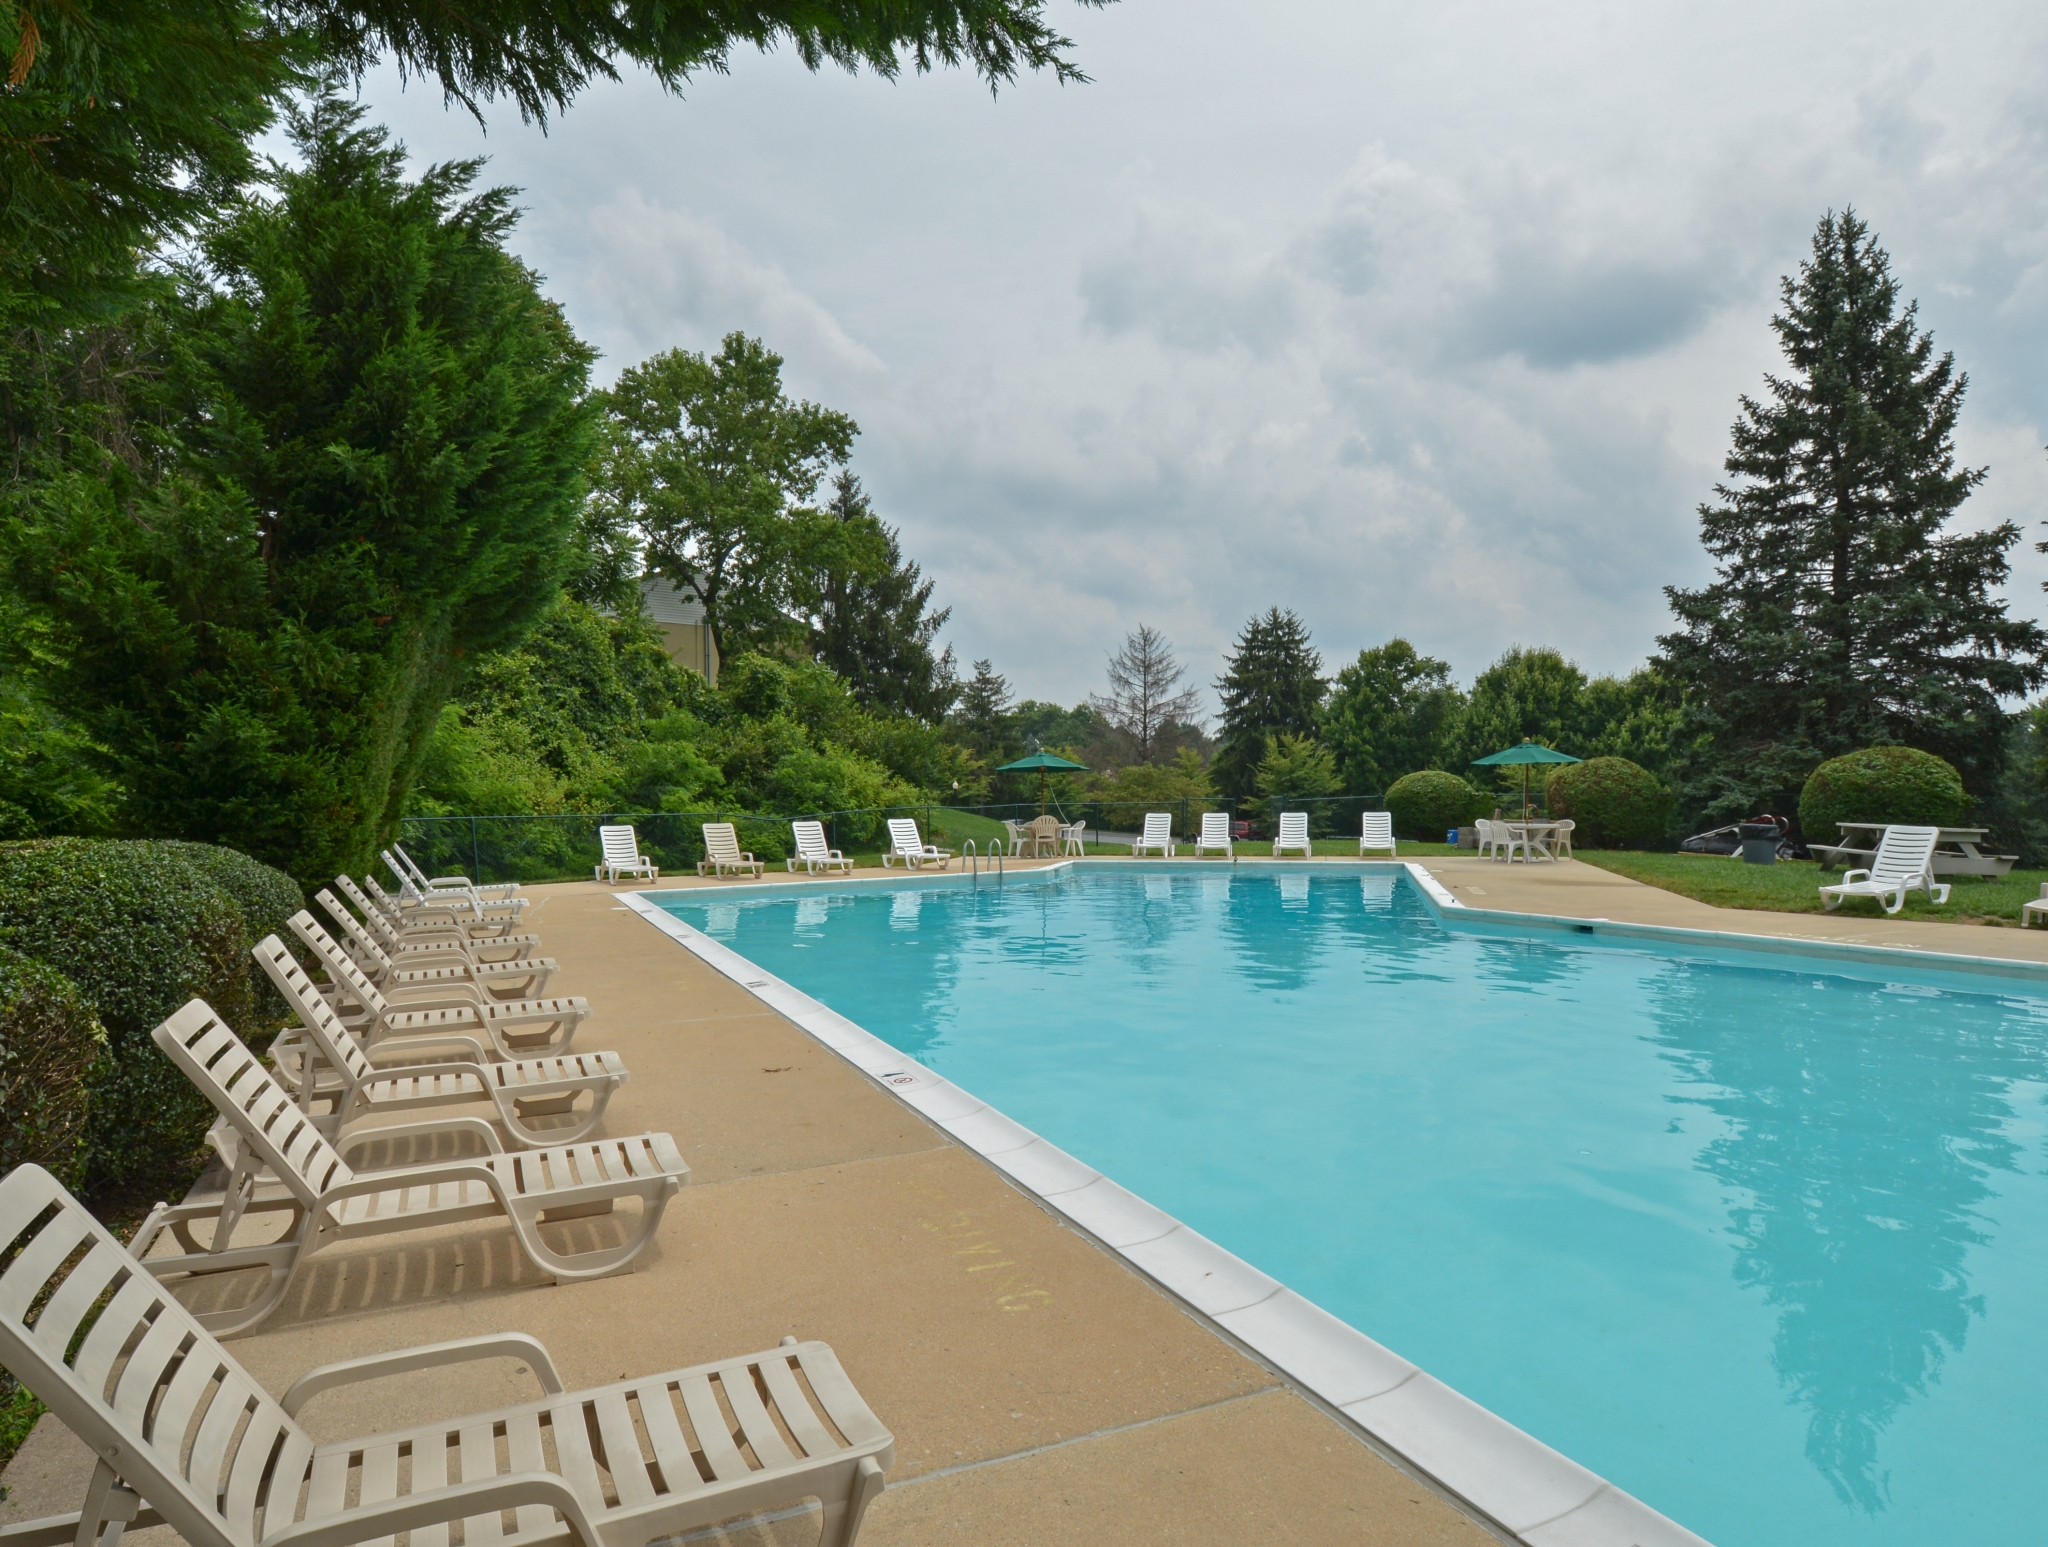 Sparkling Pool | Apartments for rent in Downingtown, PA | Norwood House Apartments